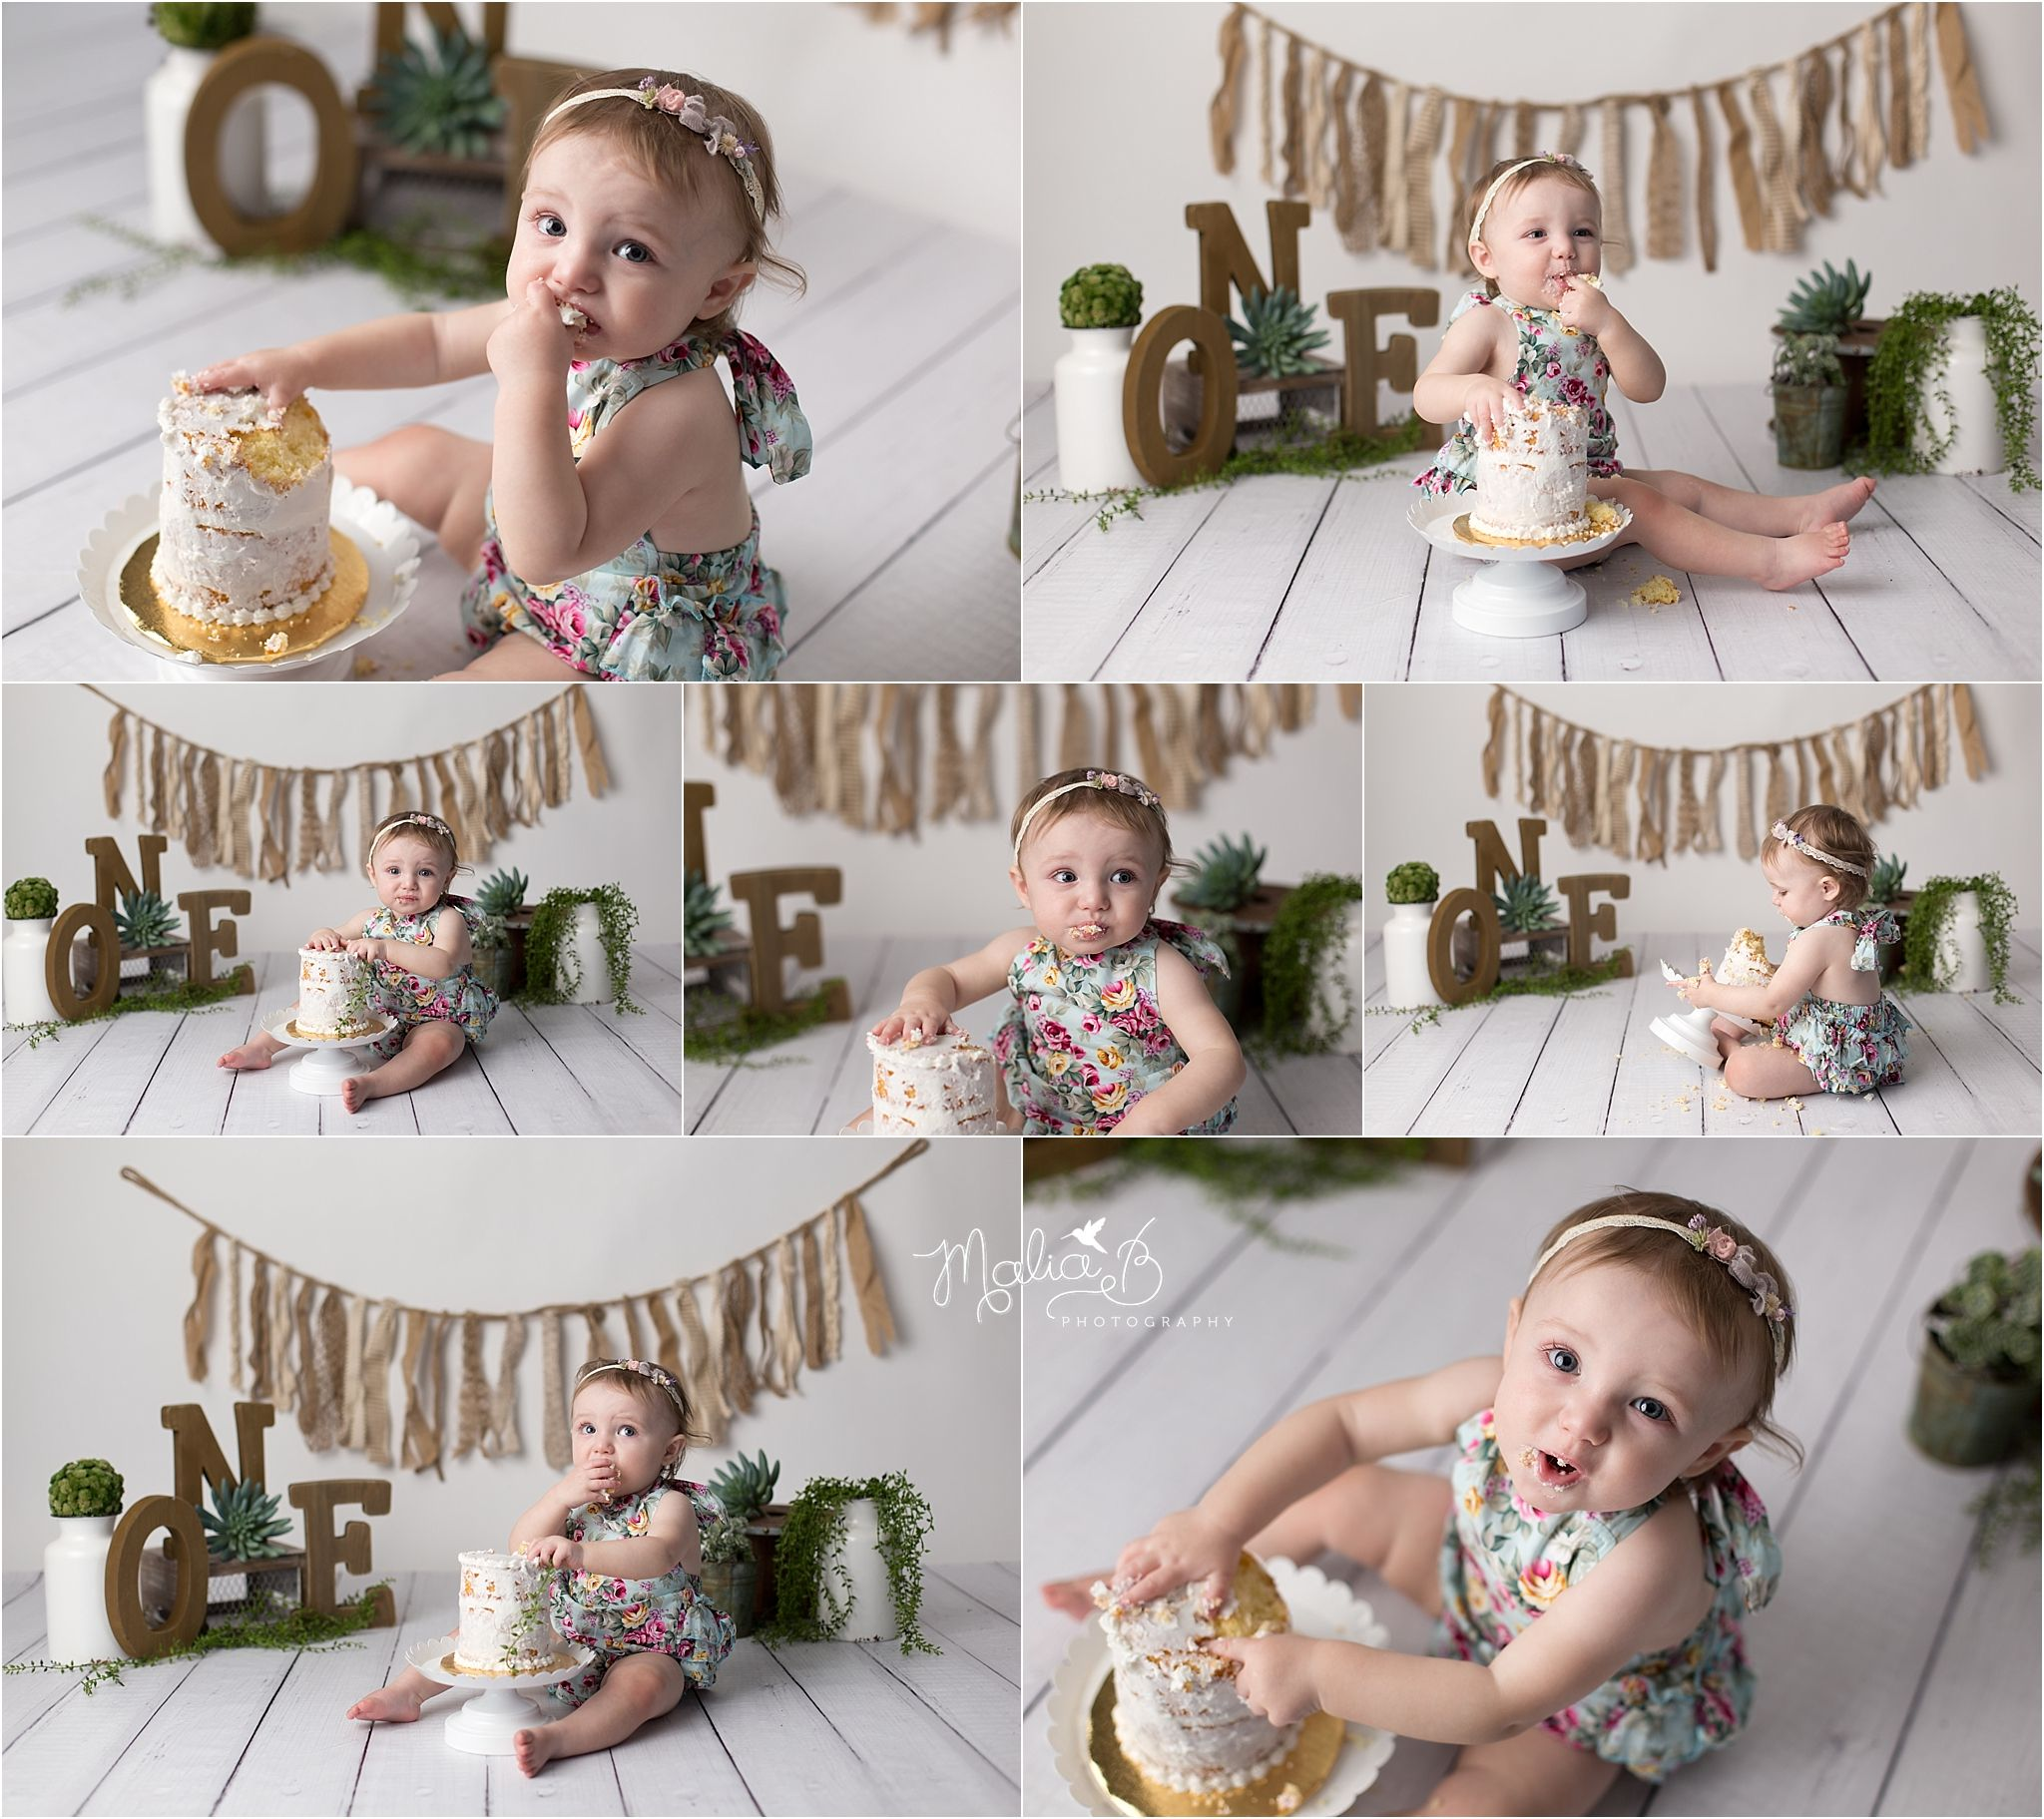 10 Interesting Cake Smashes Donut Smash Ideas For Babies 1st